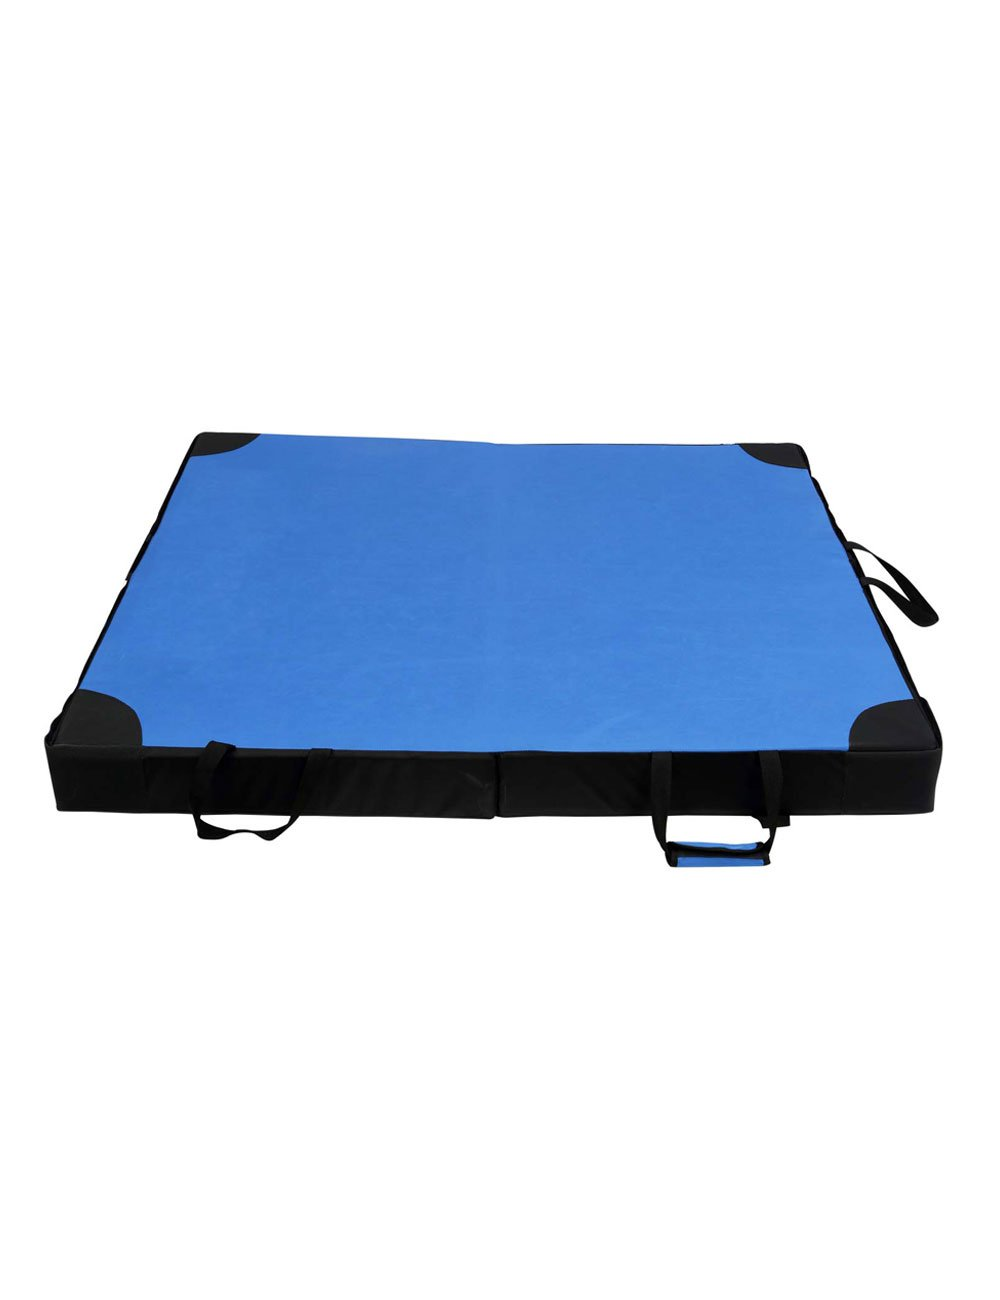 Amber Sporting Goods Yosemite Rock Climbing Bouldering Crash Pad